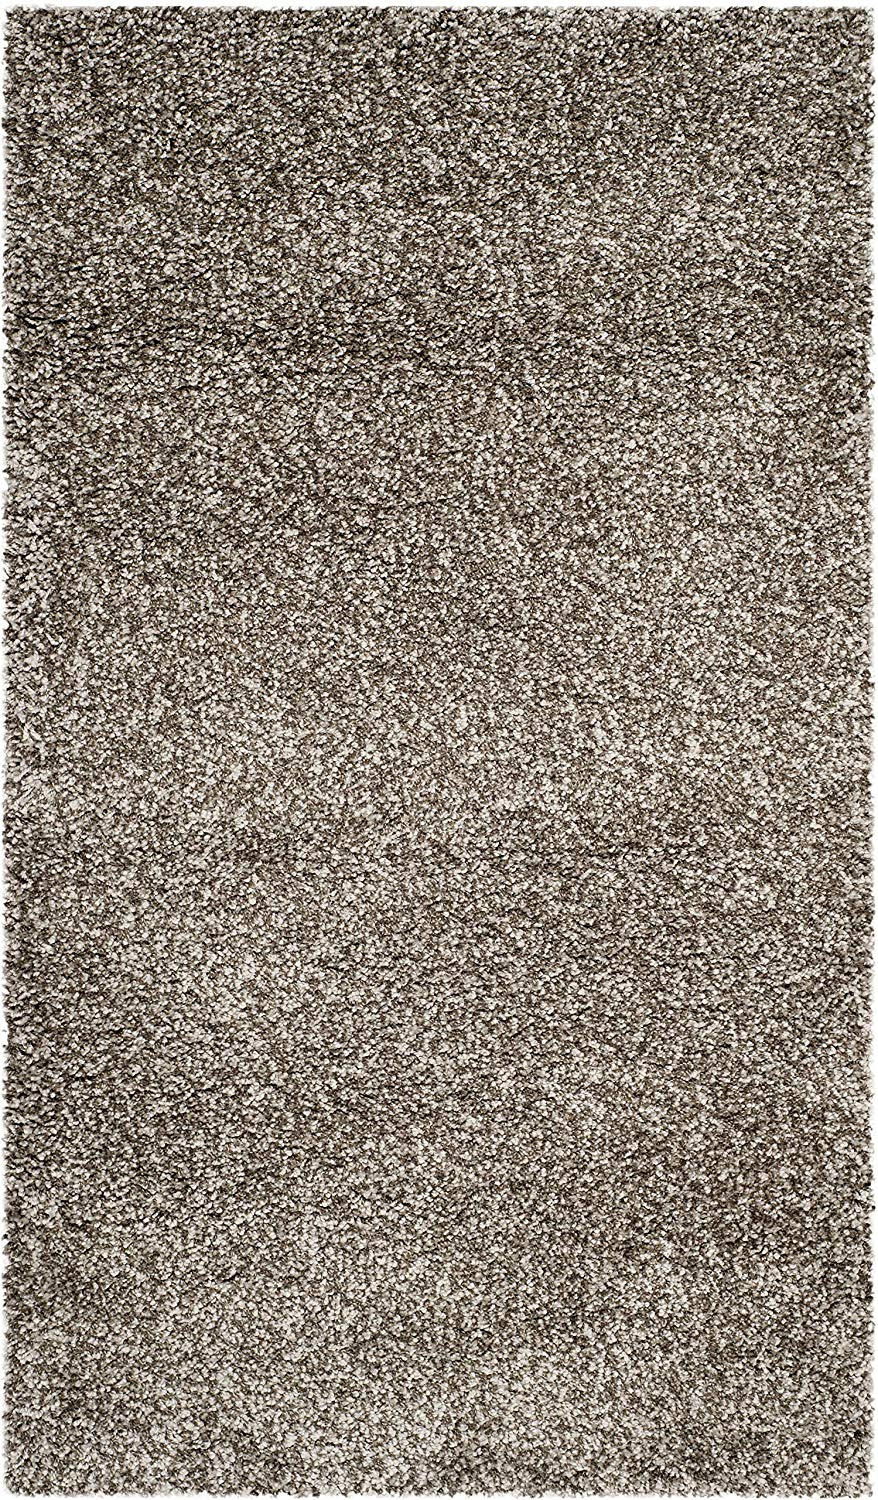 Gray Soft Plush Shag Area Rug